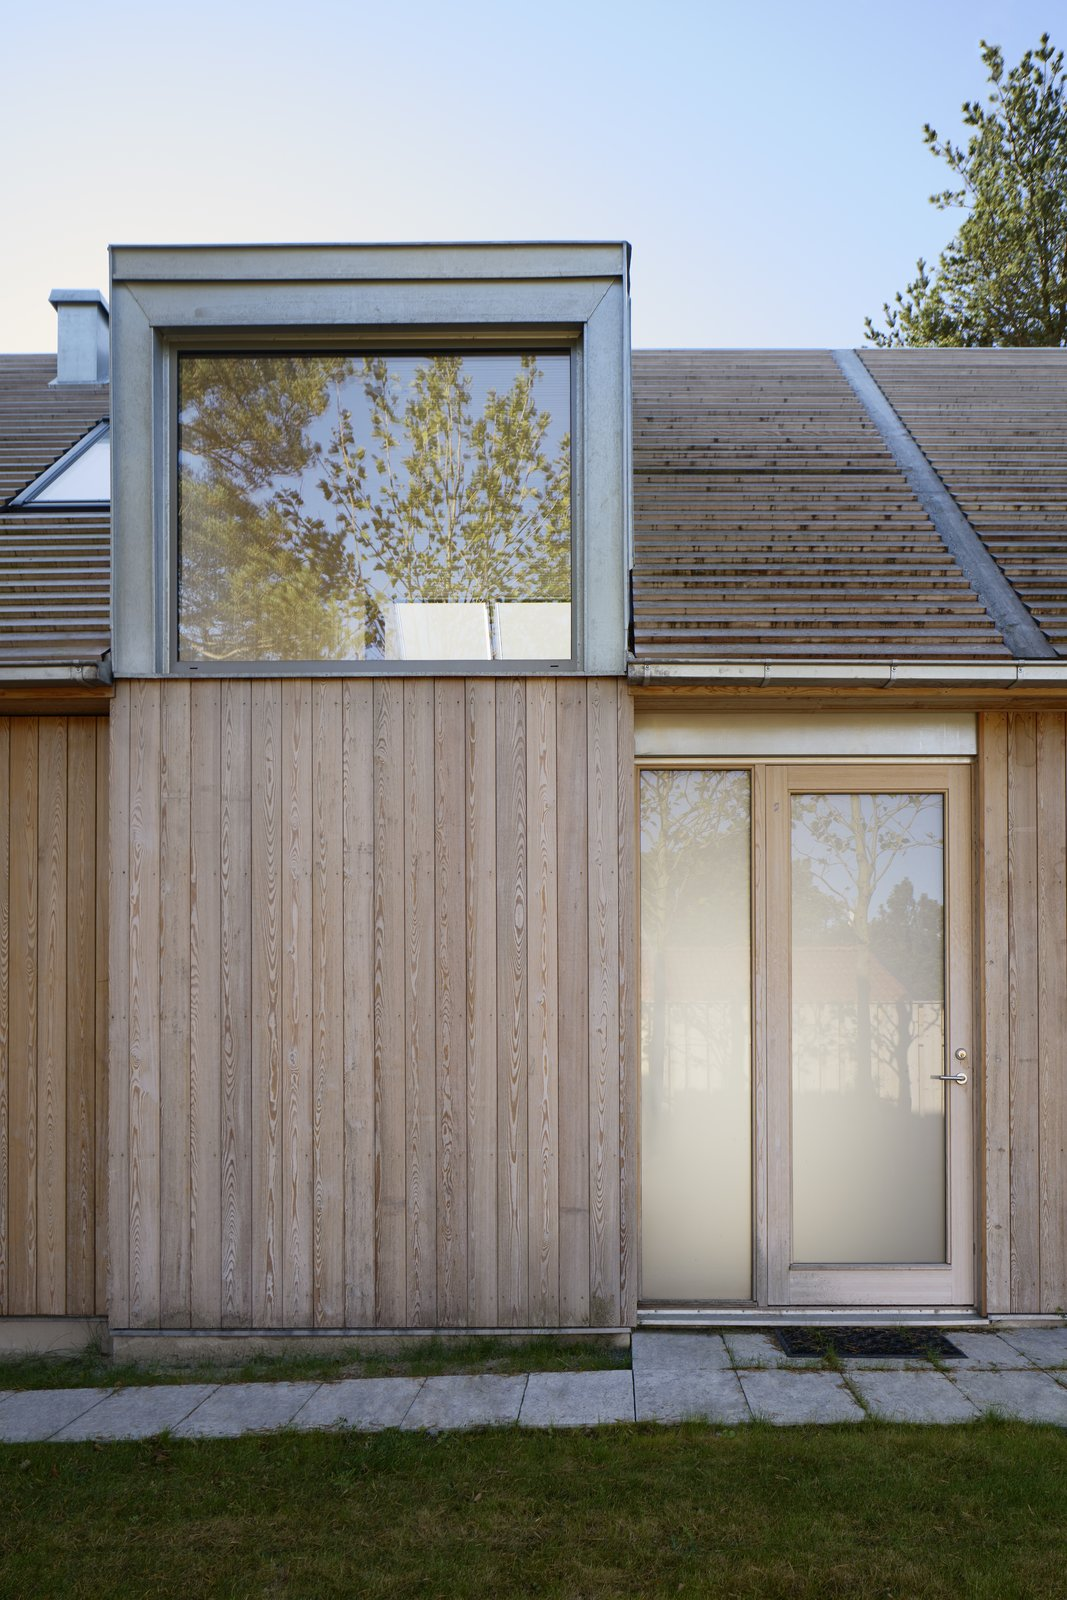 The light-colored larch and expanses of glass give the home a natural vibe and help it integrate into its sylvan setting.